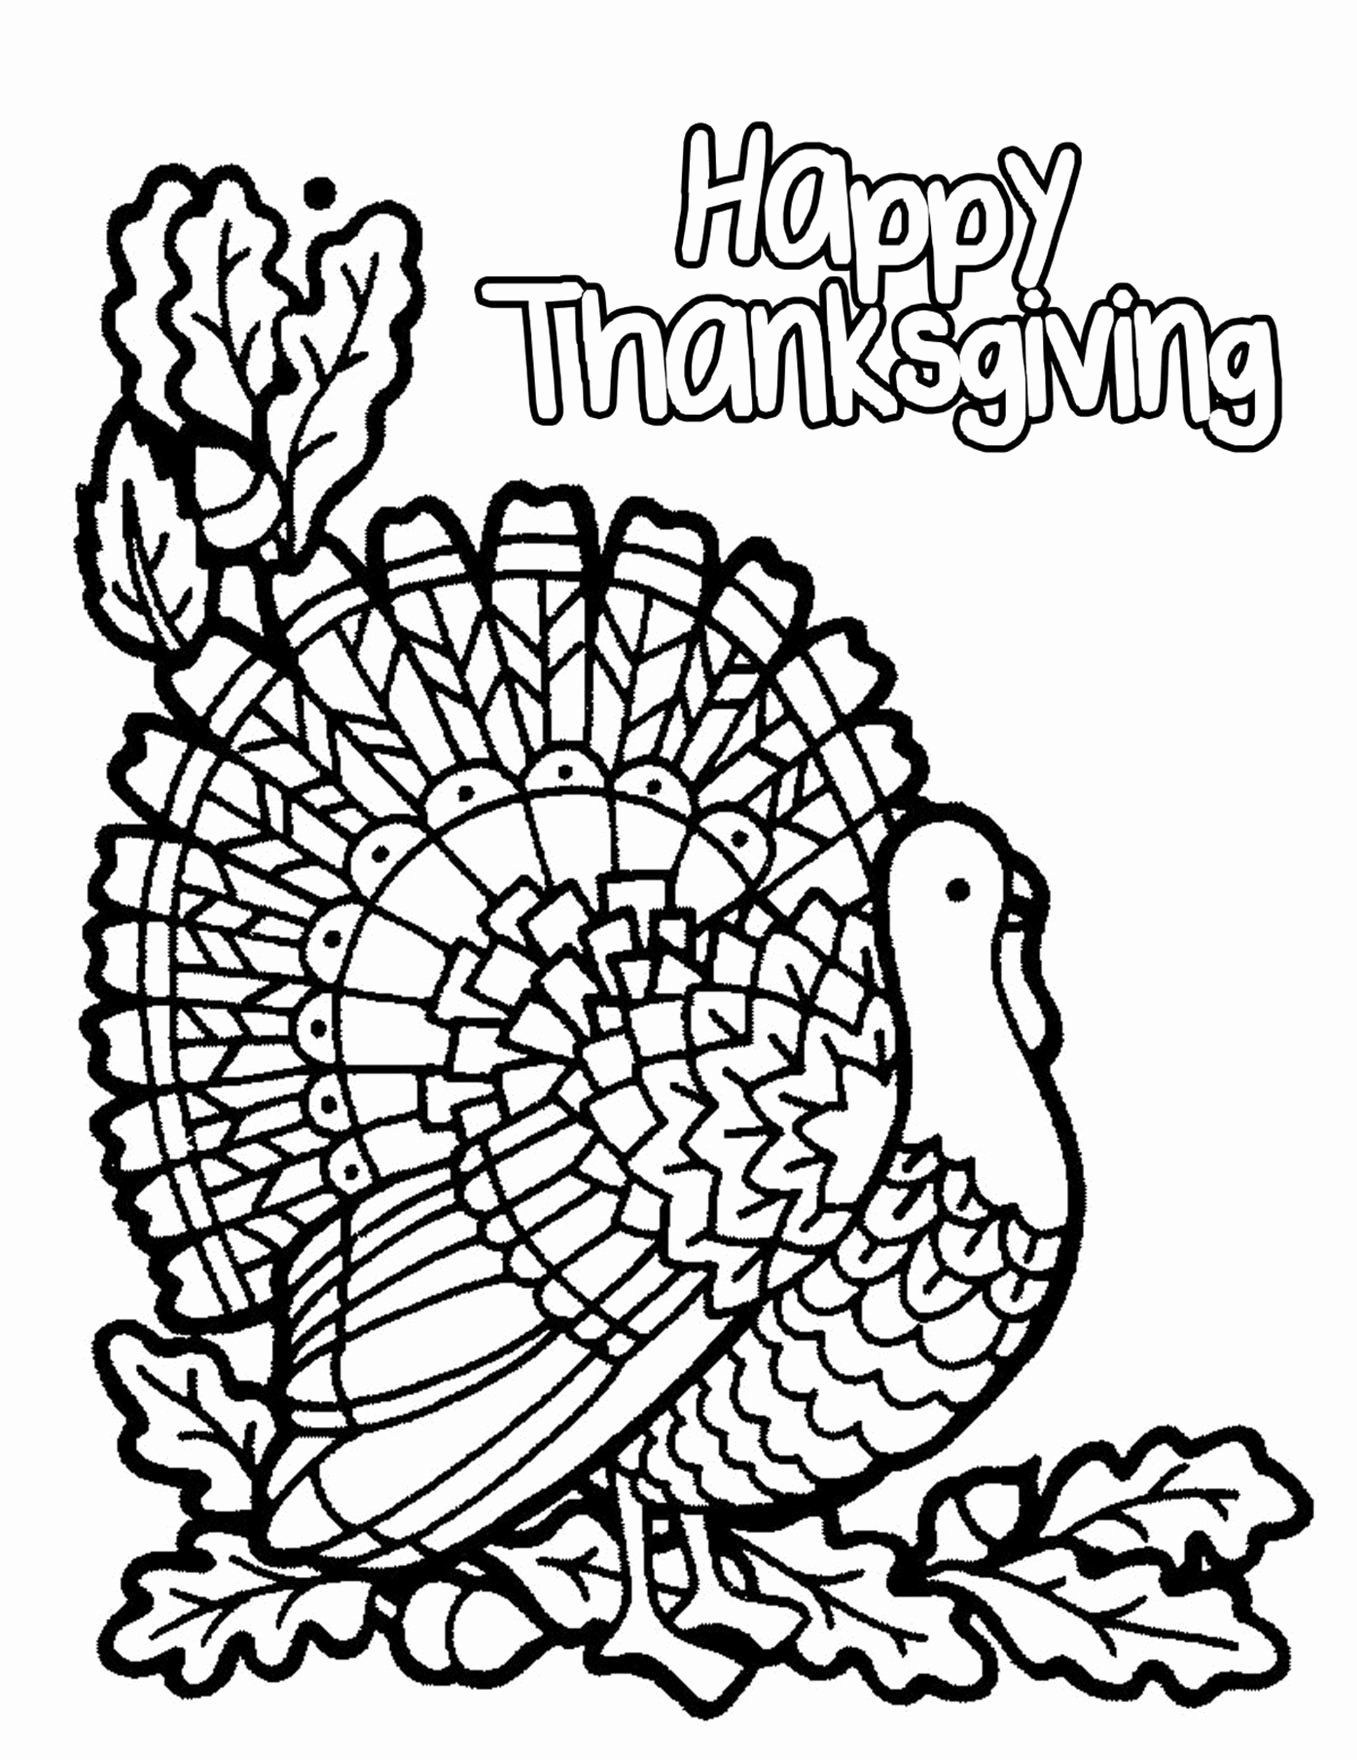 Happy Thanksgiving Turkey Coloring Pages New Coloring